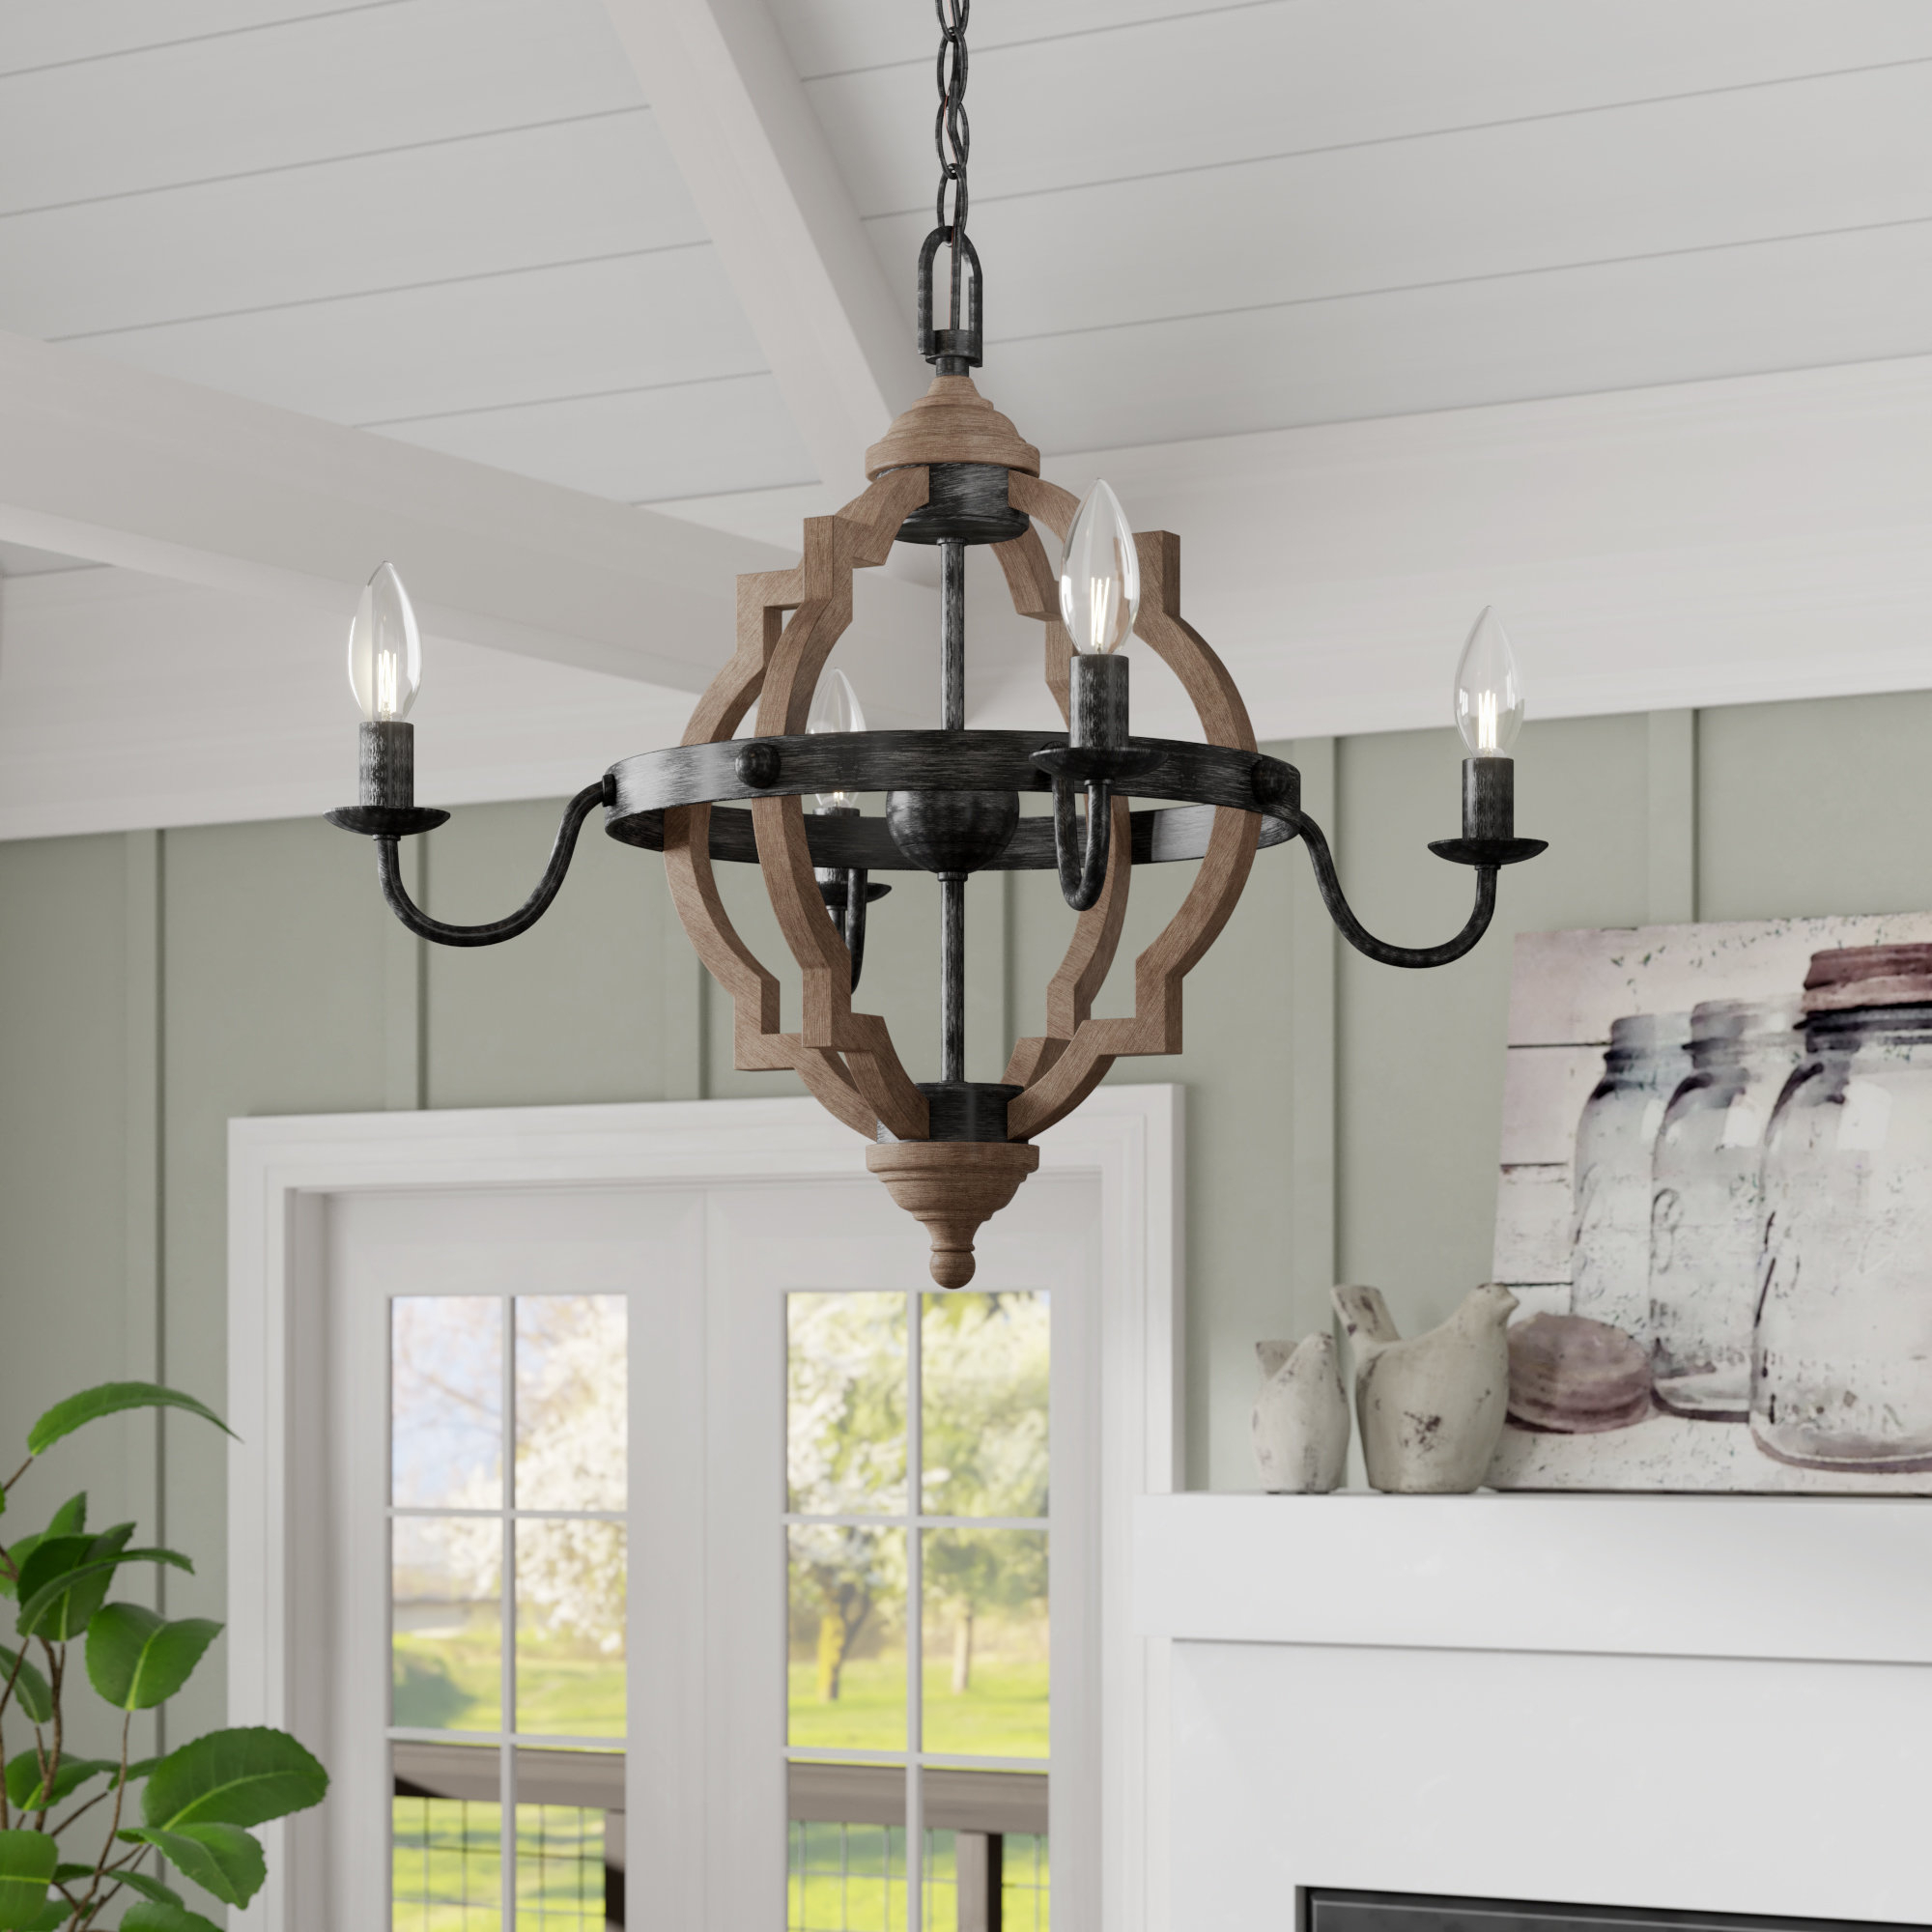 Donna 4 Light Candle Style Chandelier Pertaining To Freemont 5 Light Kitchen Island Linear Chandeliers (Gallery 27 of 30)